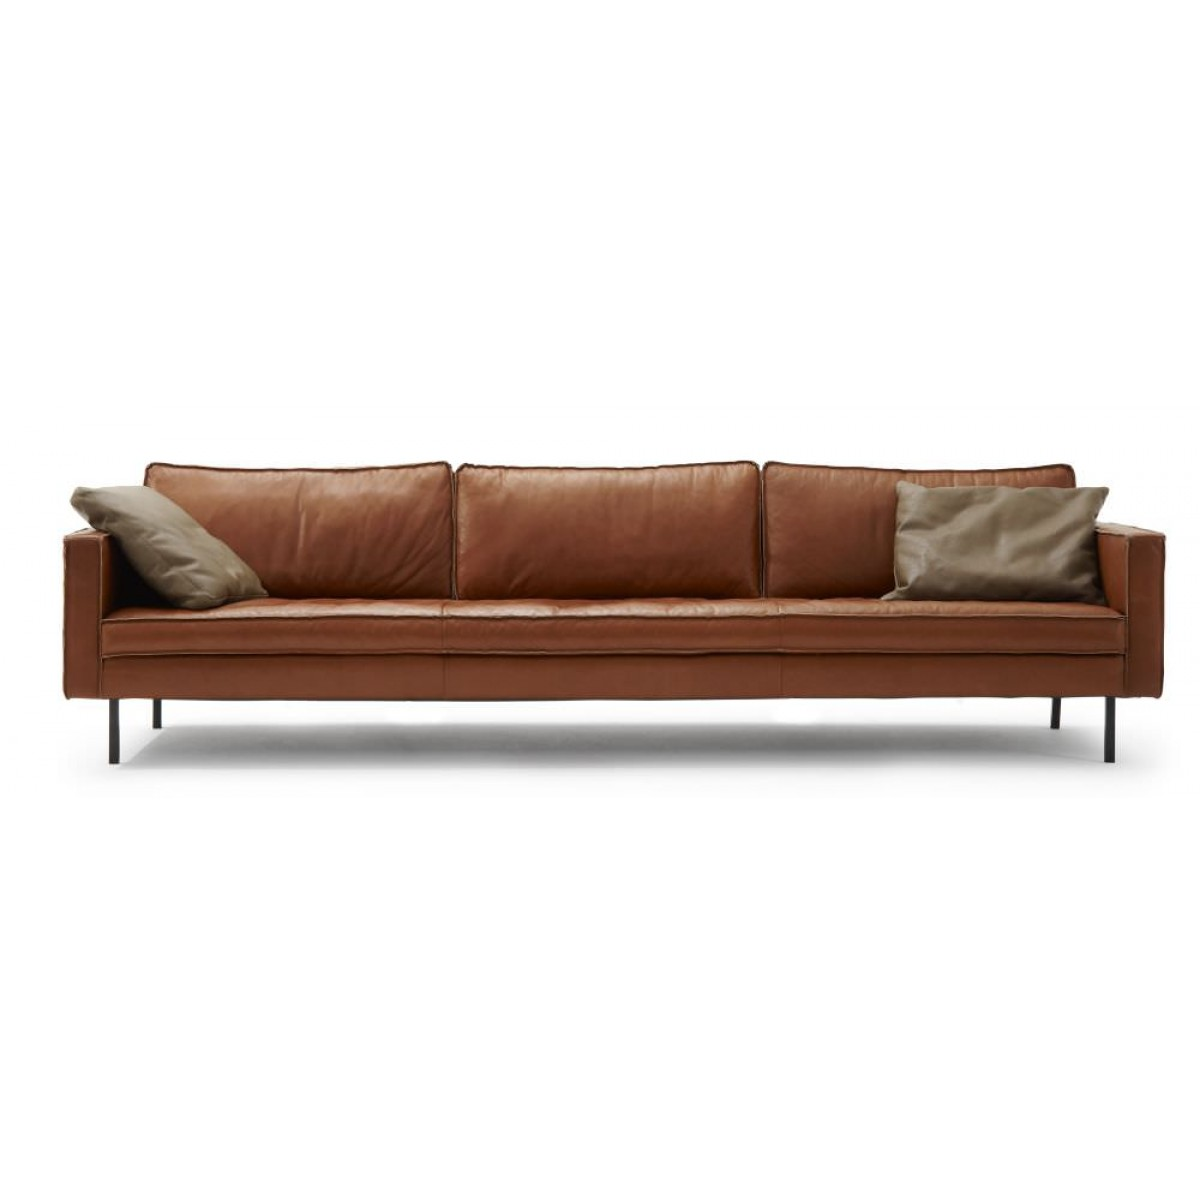 Edle designer sofas fr ihr zuhause sofa buster parisarafo Image collections